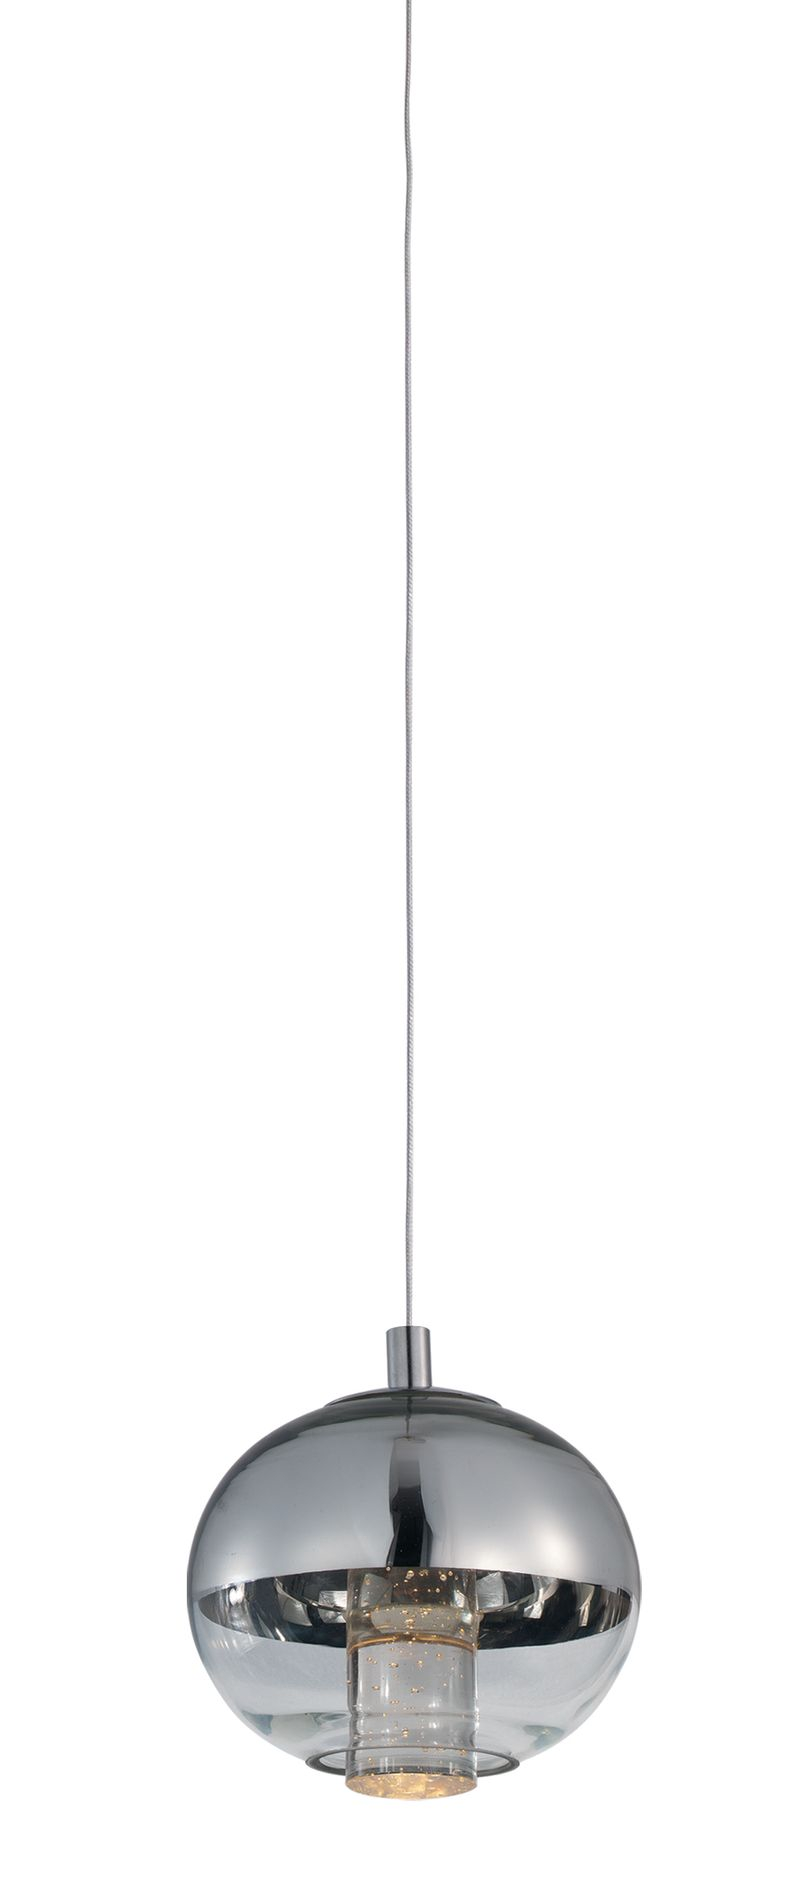 "Zing 4.75"" RapidJack Pendant - Polished Chrome"